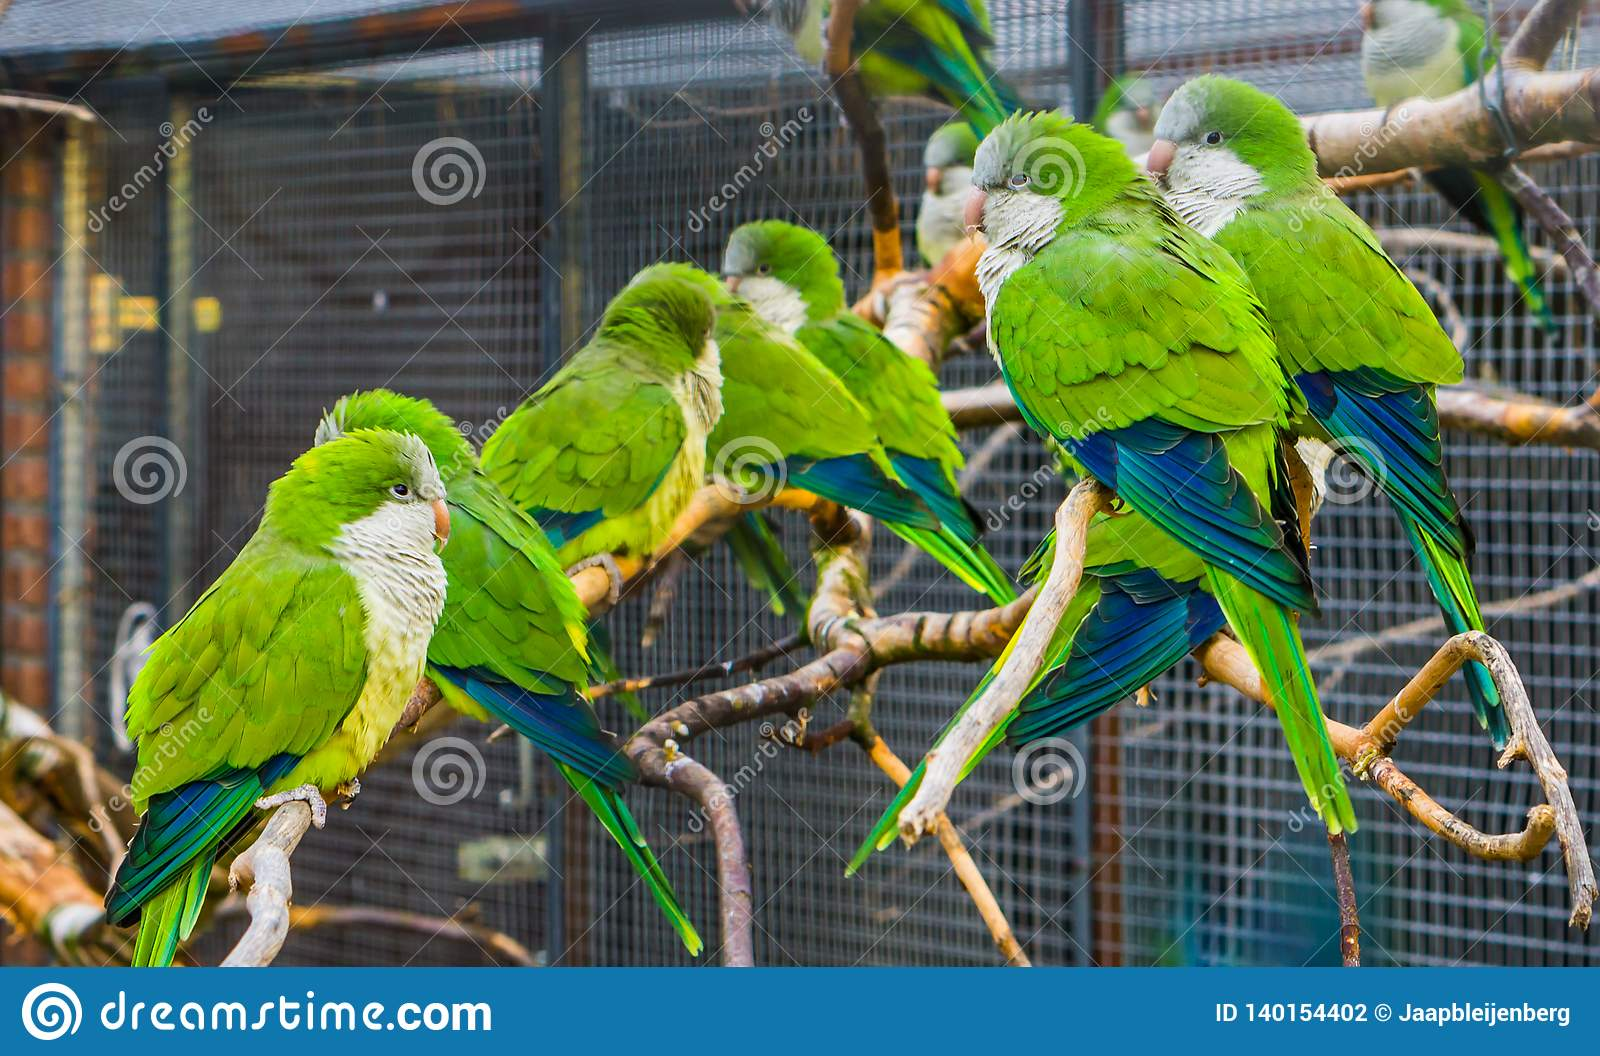 Many Monk Parakeets Sitting Together On Branches In The Aviary Popular Pets In Aviculture Tropical Birds From Argentina Stock Photo Image Of Conure Bird 140154402